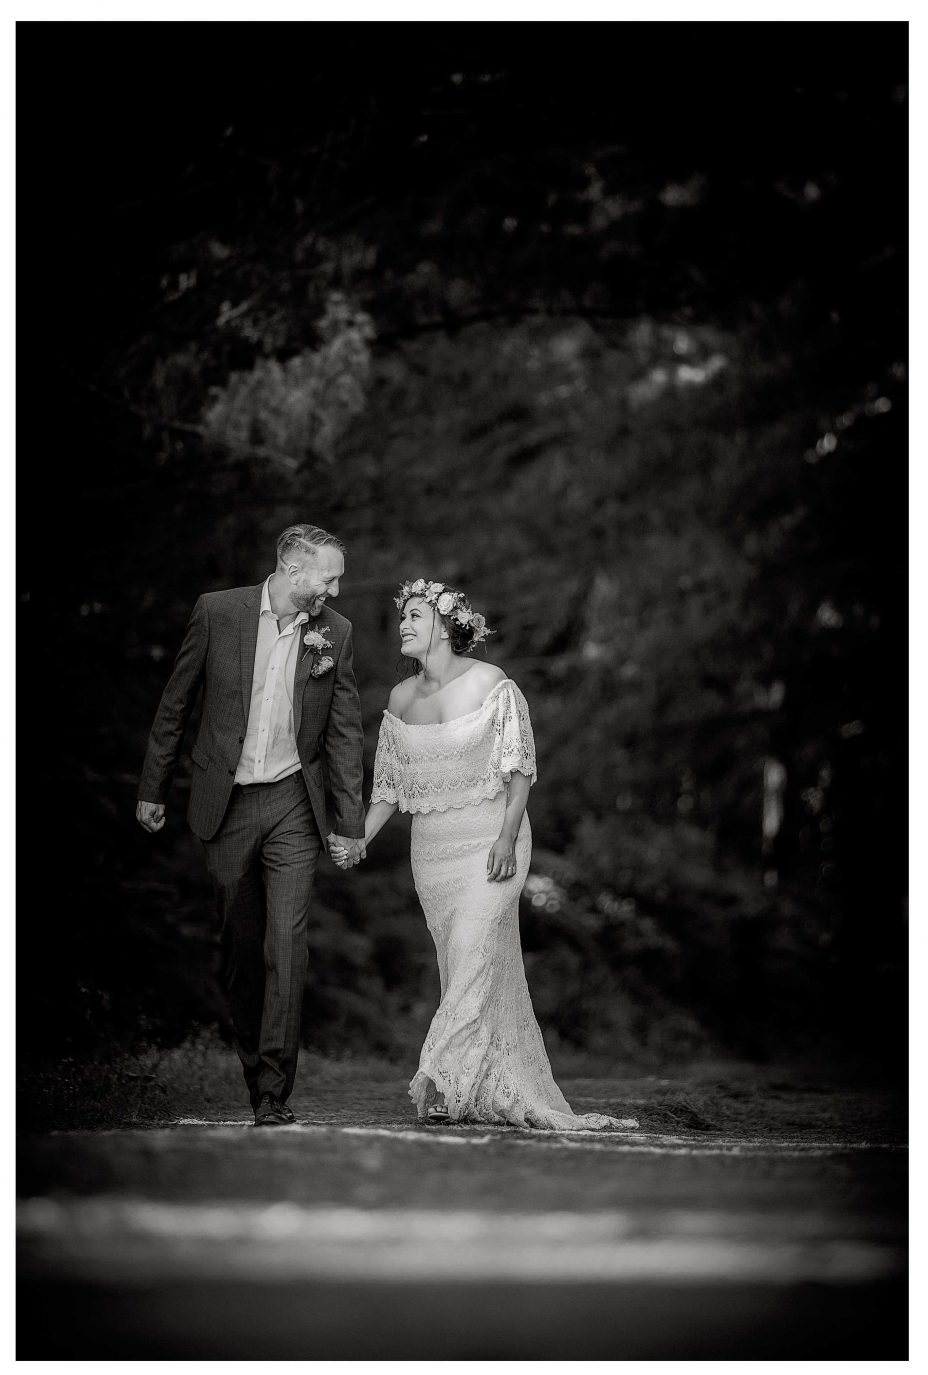 Bride and groom wlak hand in hand along Riverhead Forrest track, Kumeu Valley Esatte creative wedding photo